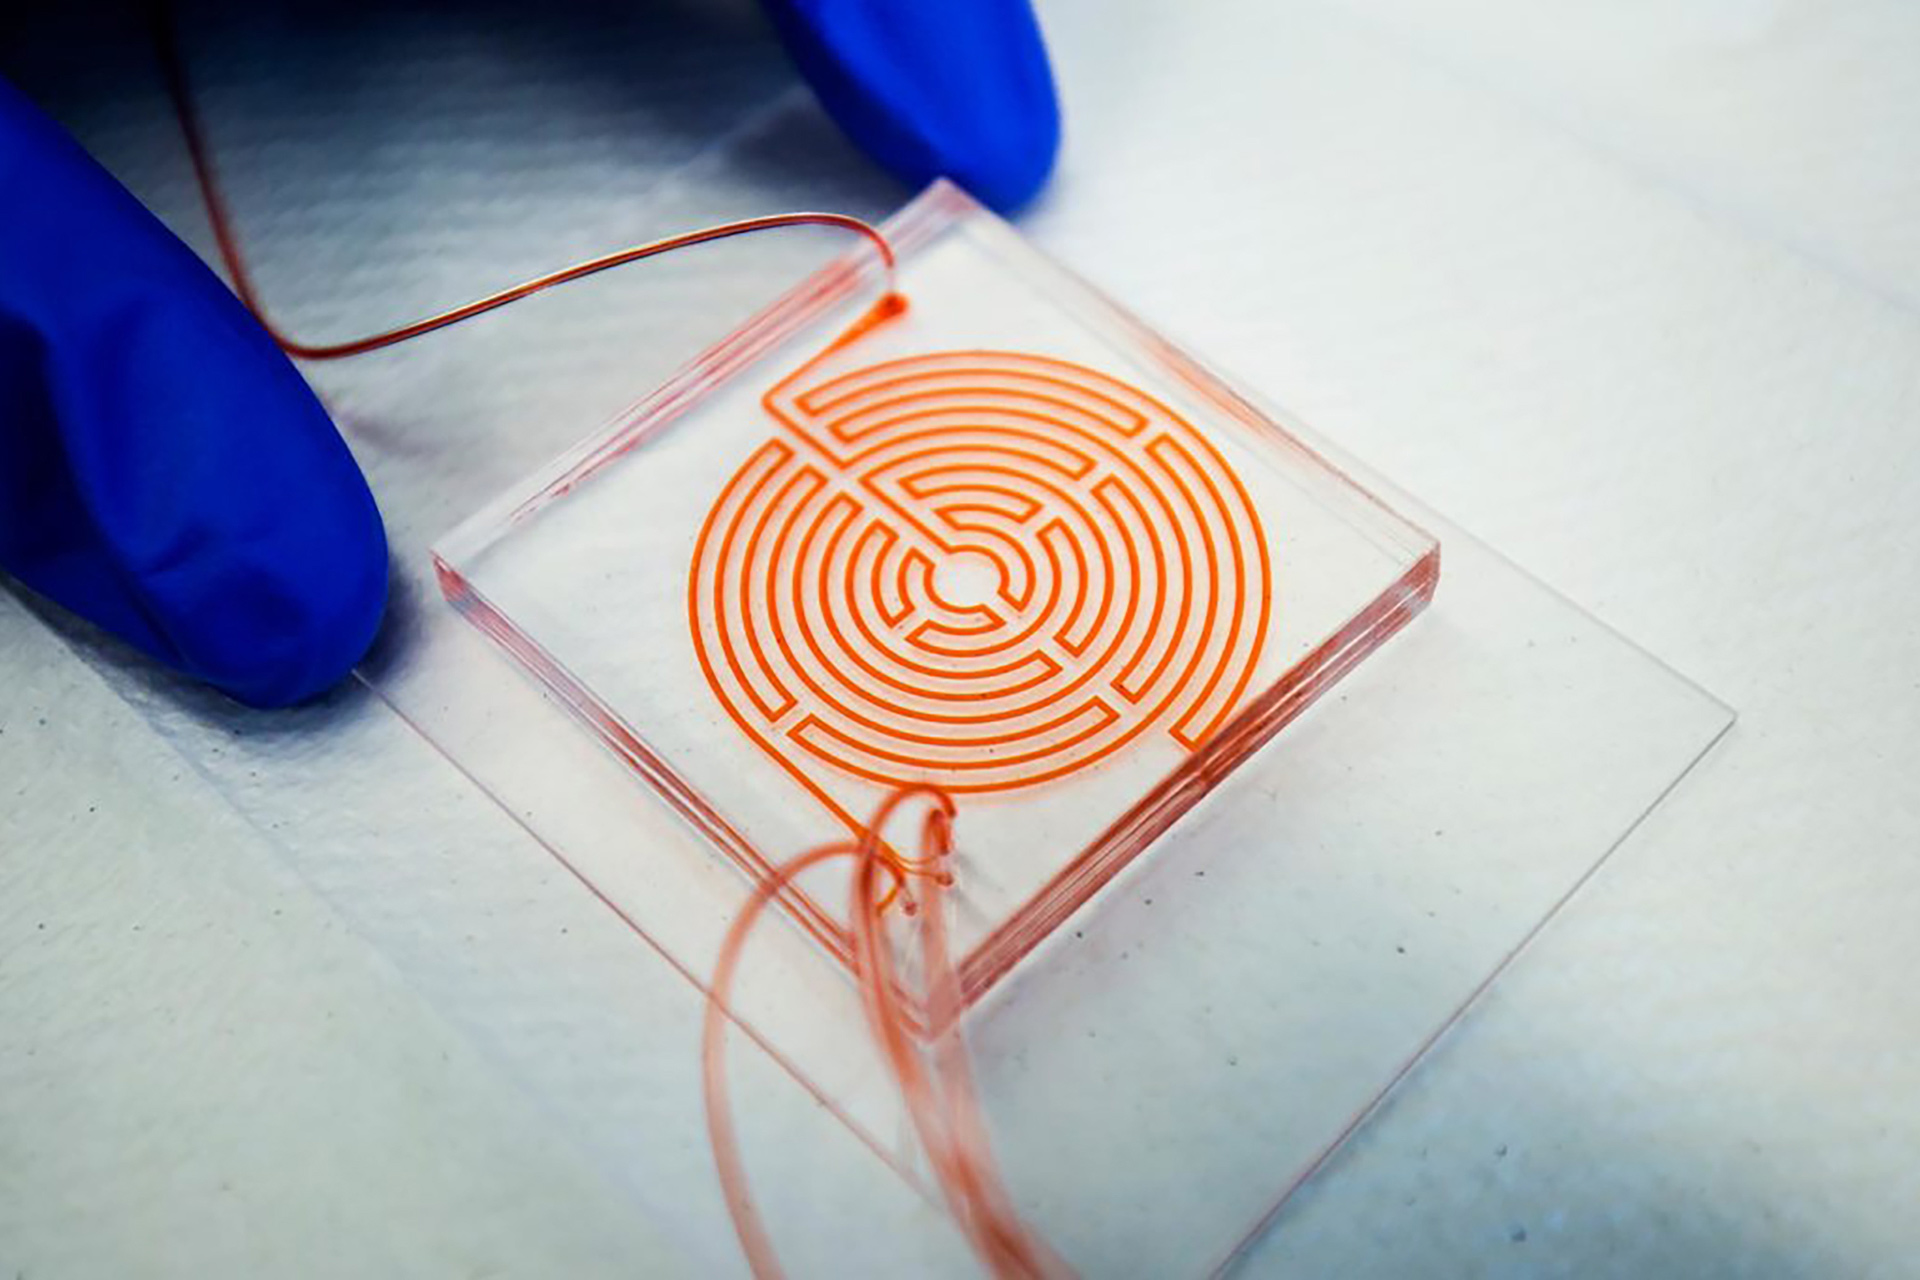 Labyrinth chip developed by Nagrath and Wicha used in clinical trial